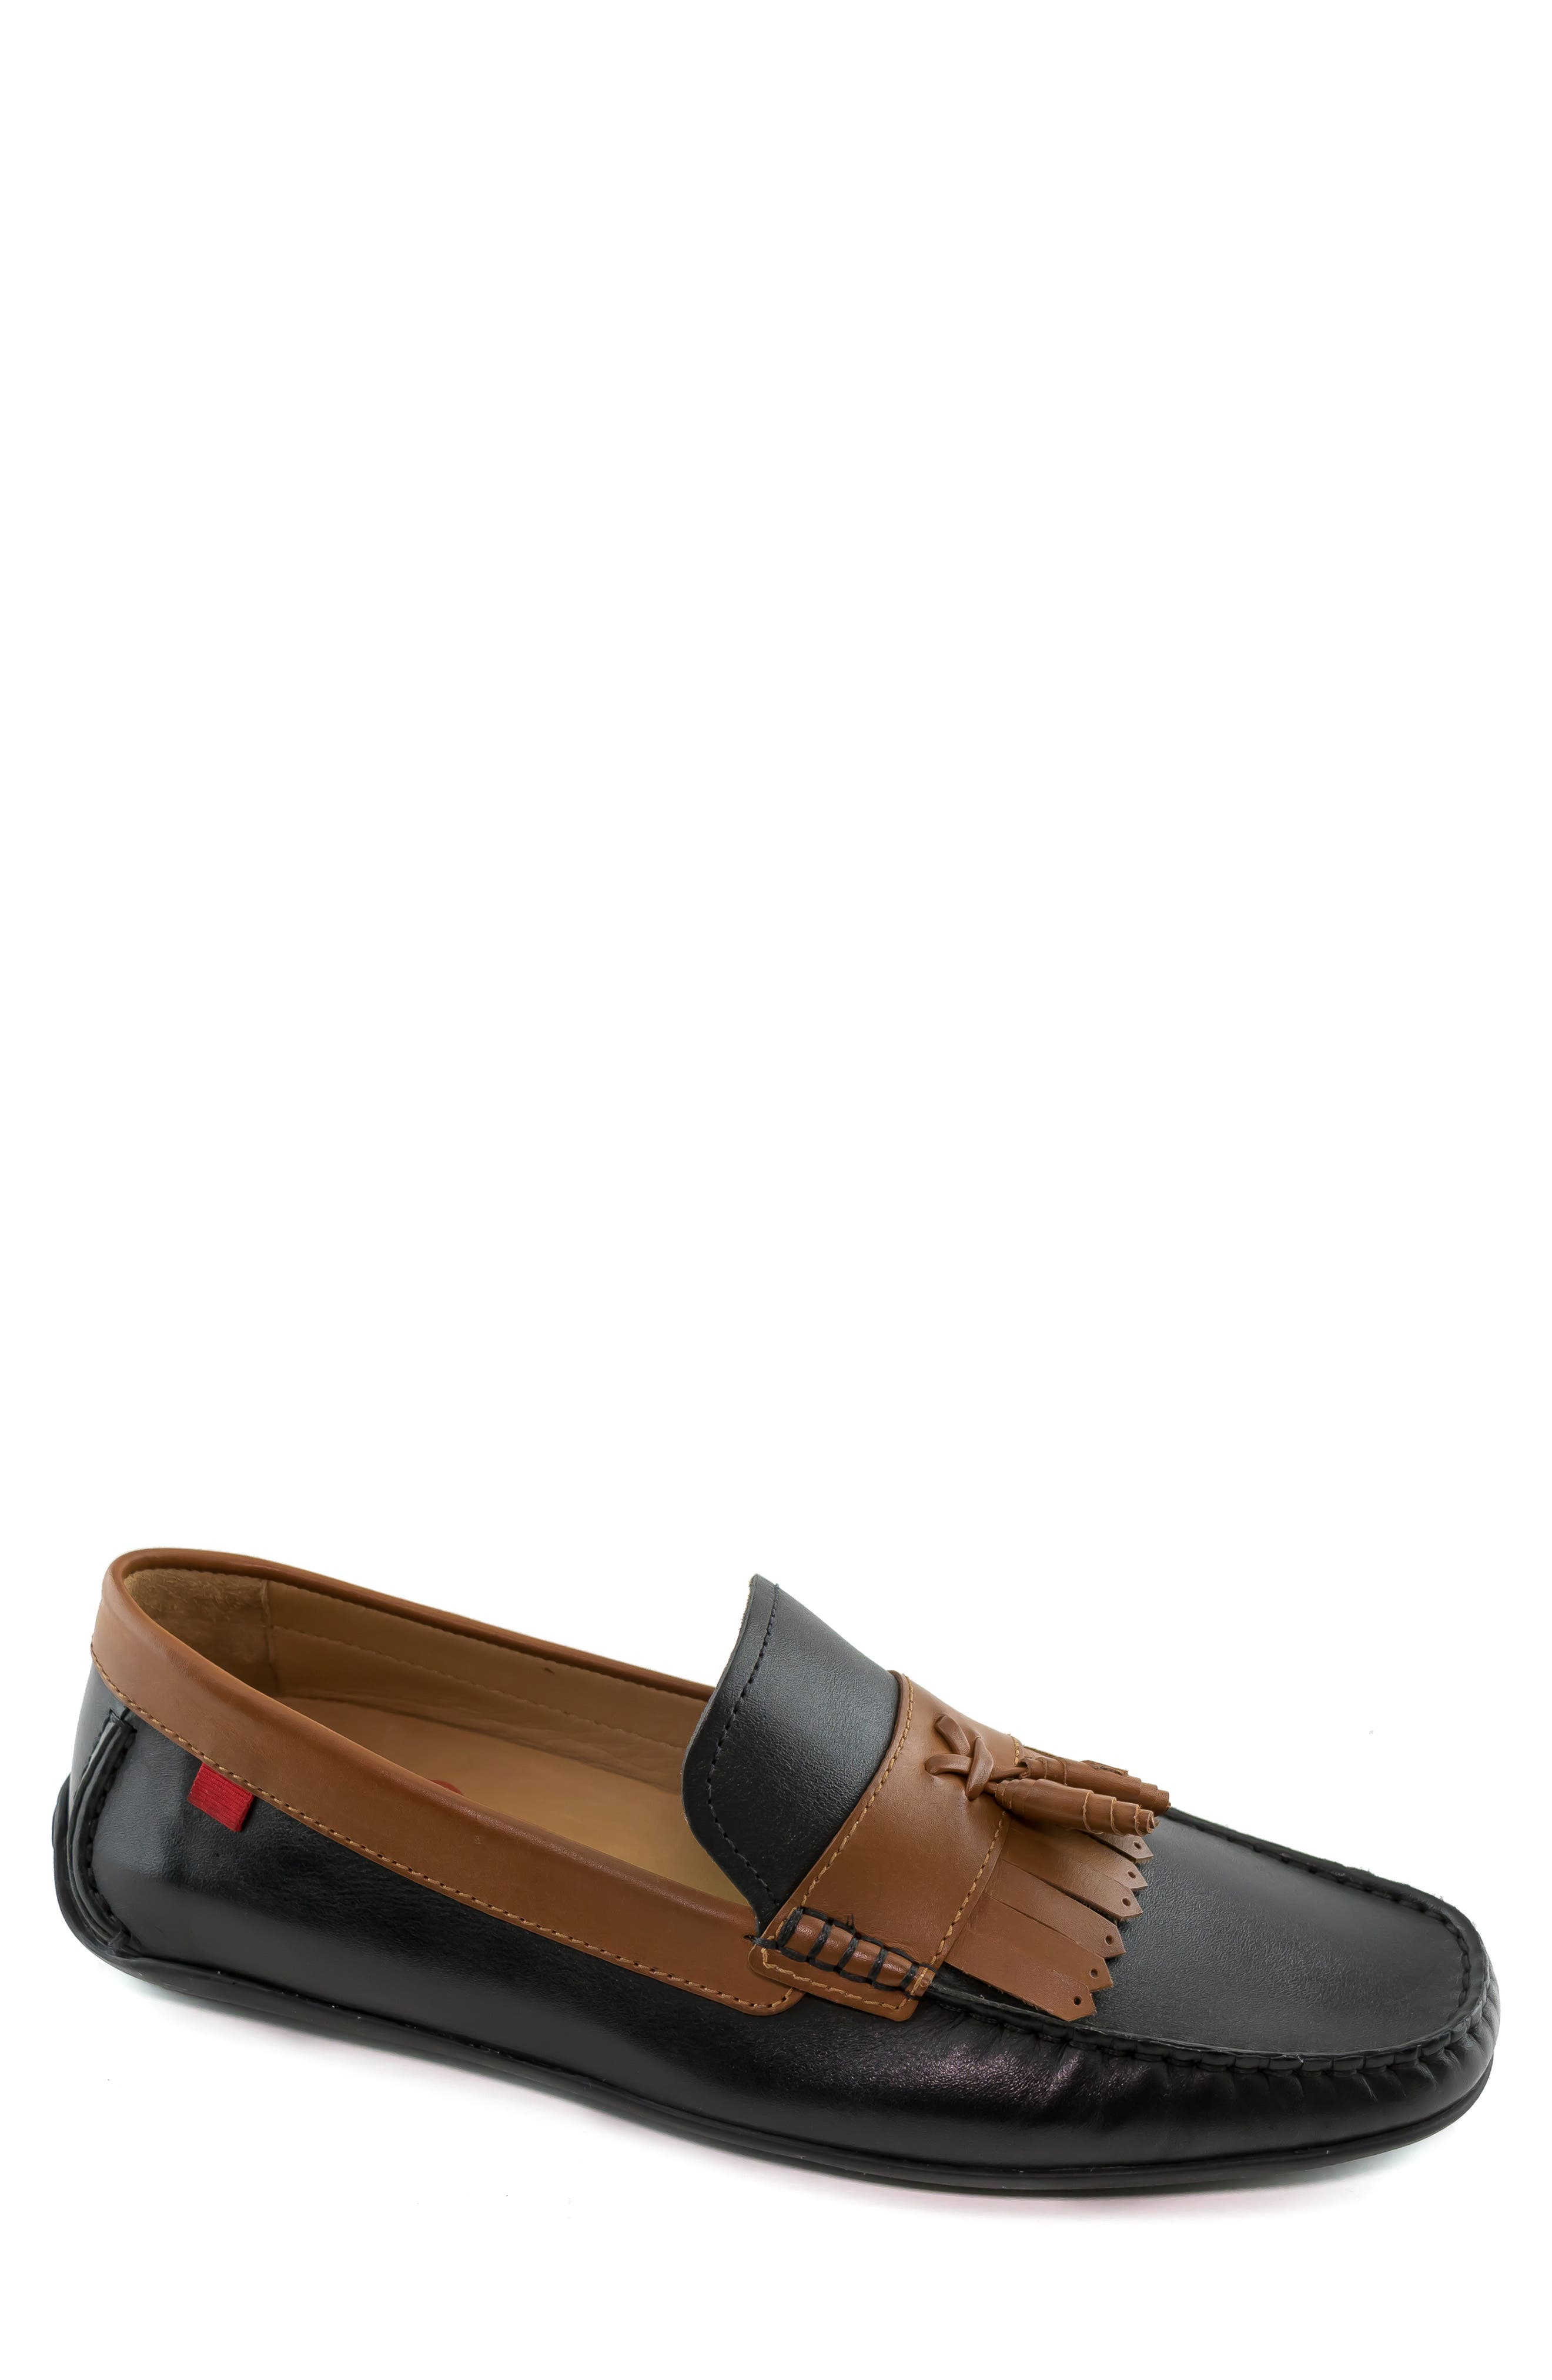 Handsome contrast trim tops a versatile driving shoe set on a durable, flexible sole that provides reliable traction. The footbed is padded and includes a gel heel insert for all-day support. Style Name: Marc Joseph New York Liberty Driving Shoe (Men). Style Number: 6034678 1. Available in stores.